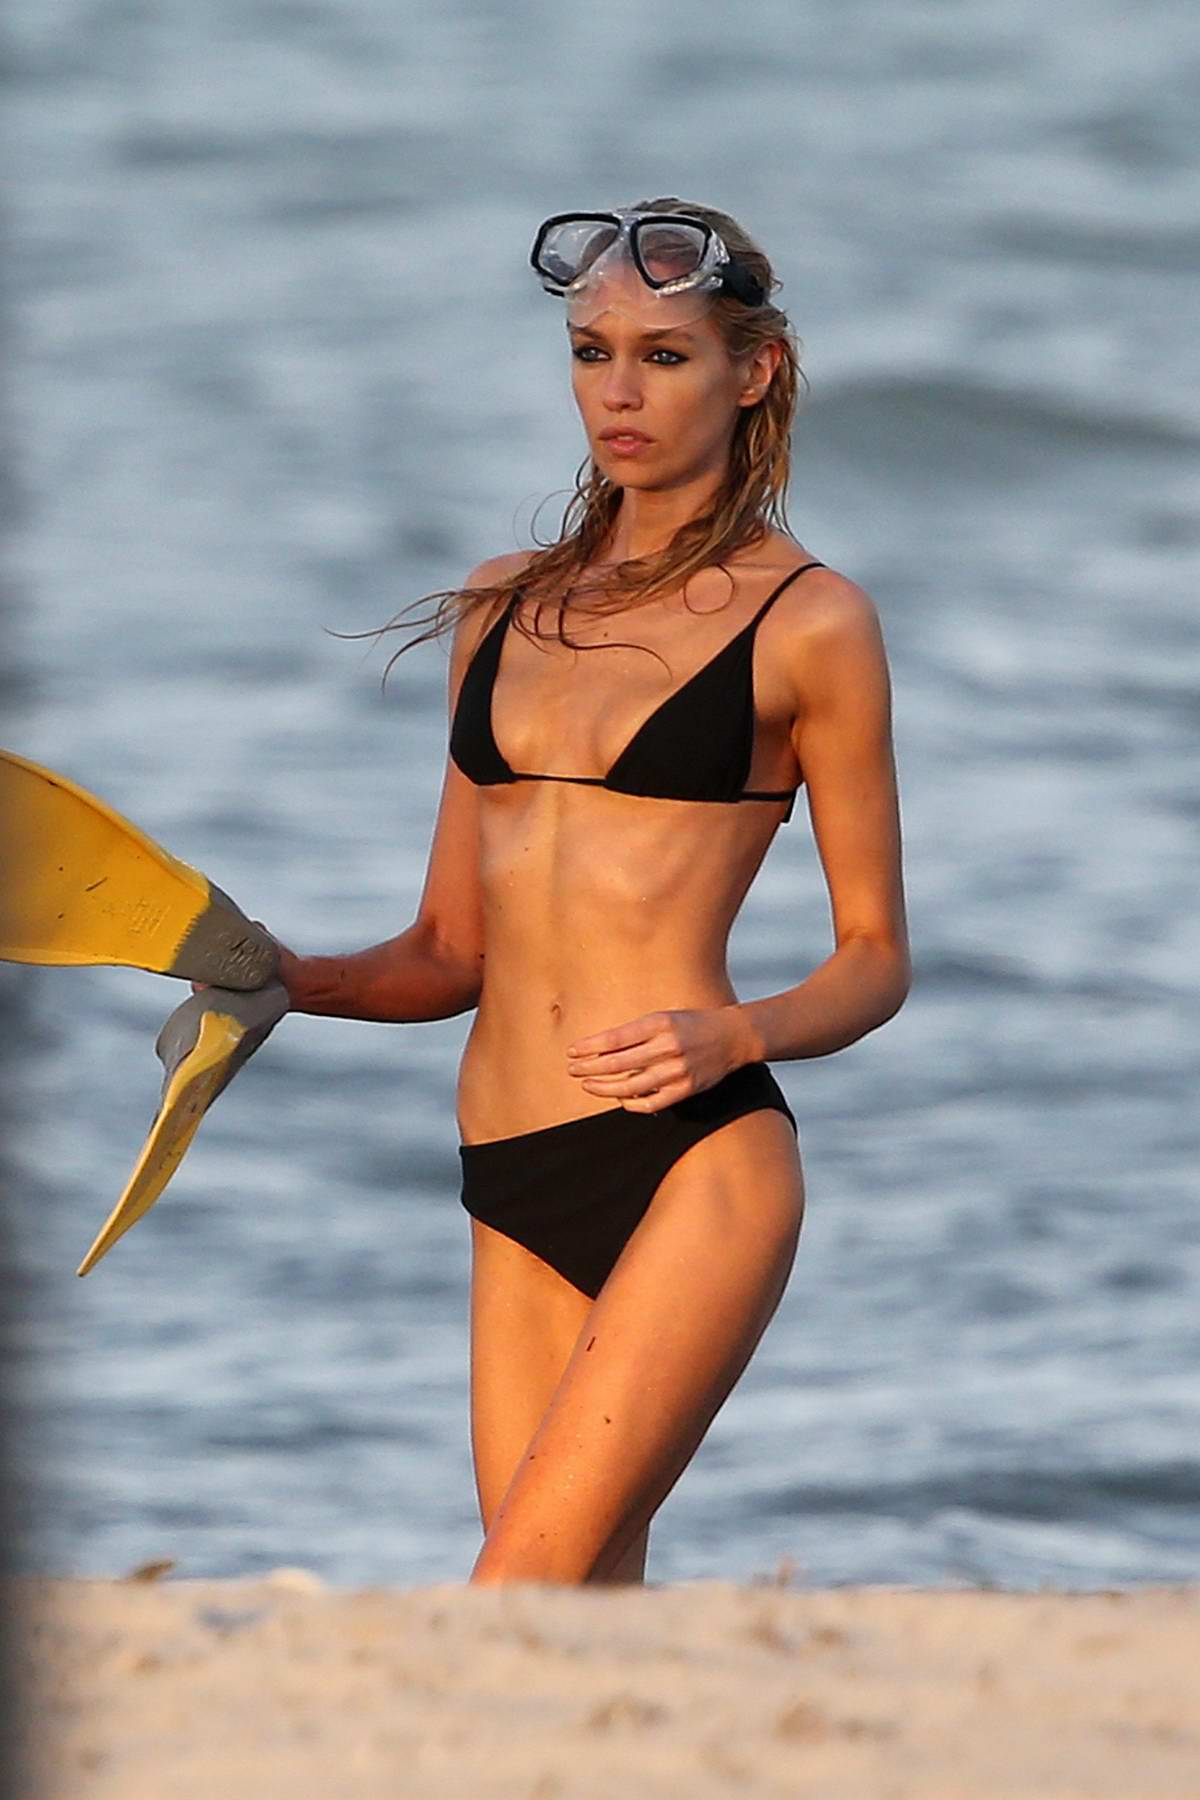 Stella Maxwell wears a black bikini as she emerges from the sea during a photoshoot in Miami, Florida